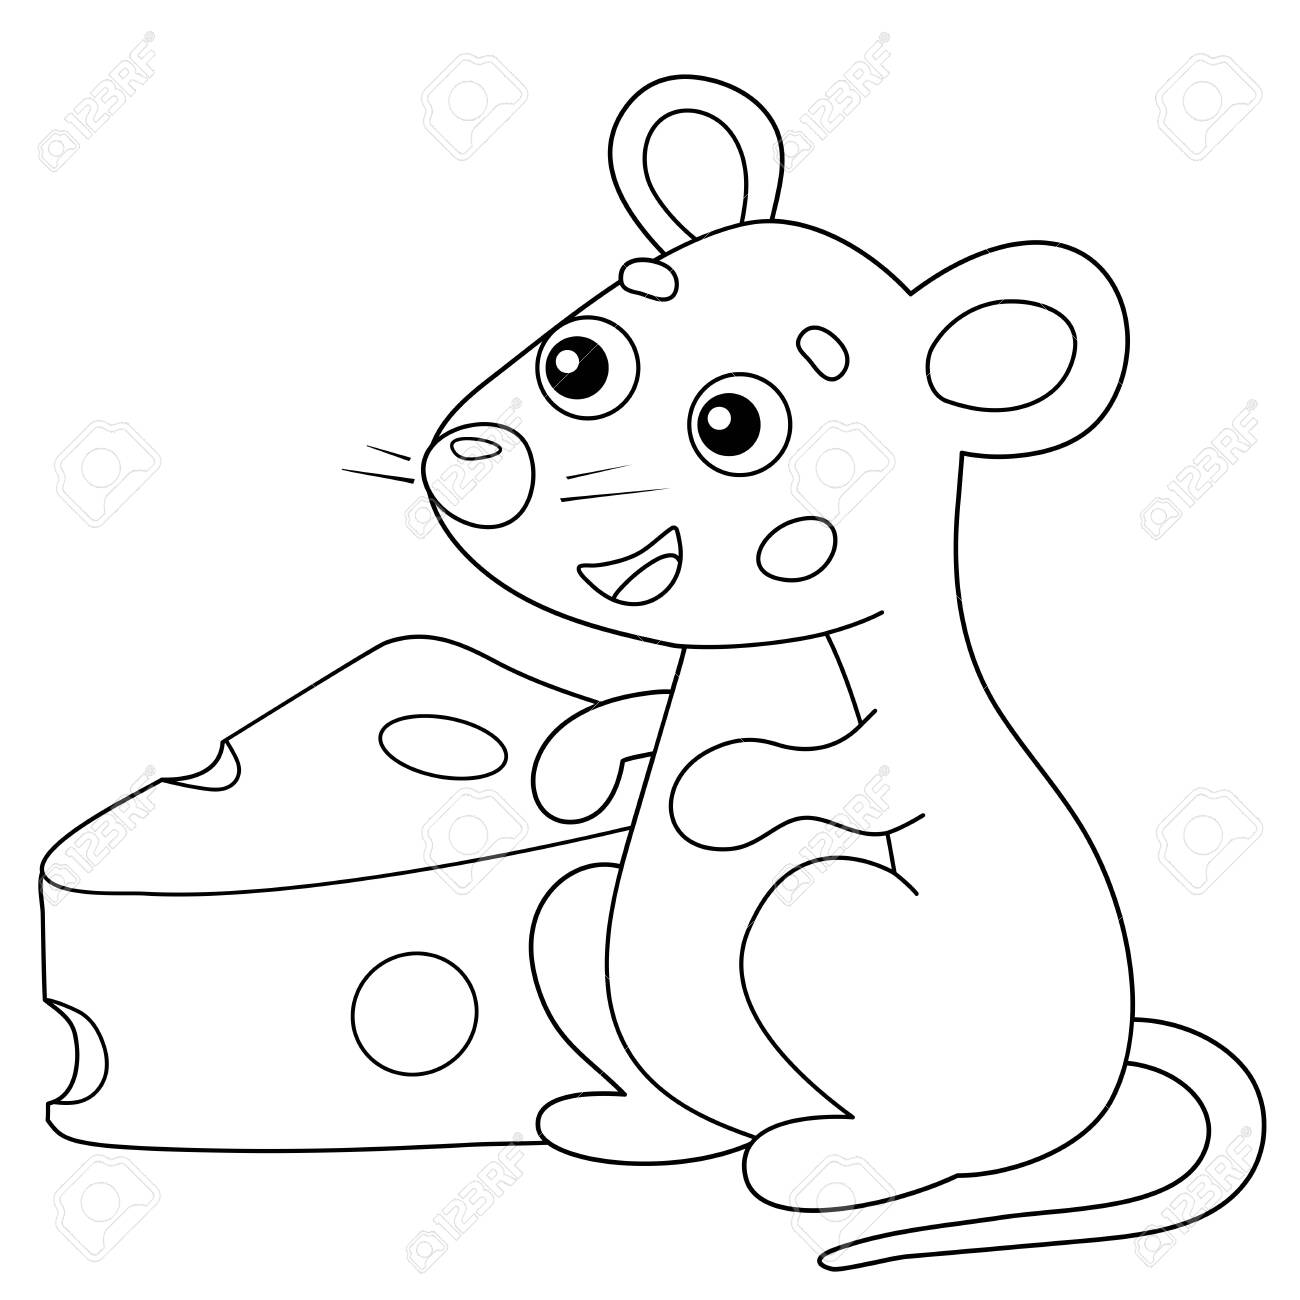 - Coloring Page Outline Of Cartoon Mouse With Cheese. Animals